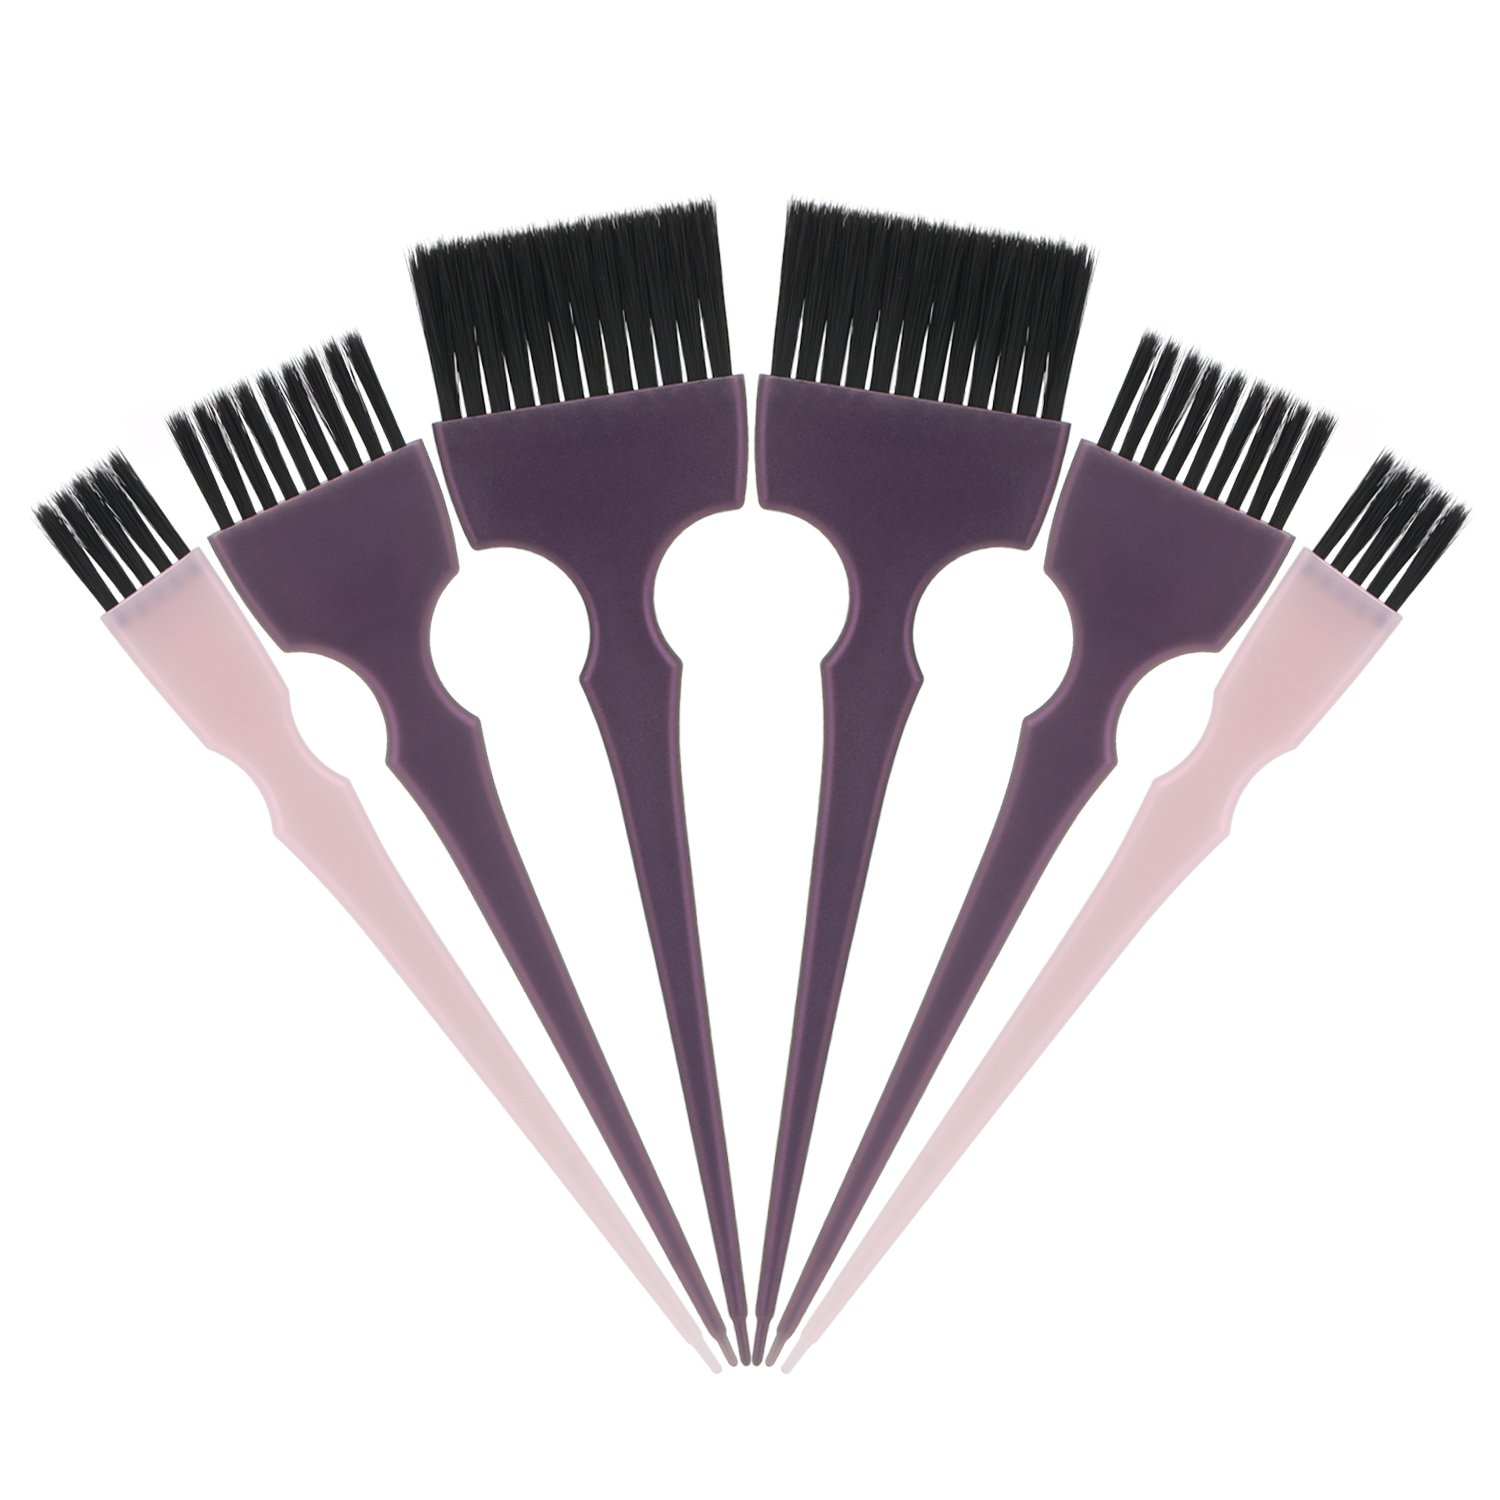 Hair Dye Brush Set, Segbeauty 6pcs Tint Brush Set Hair Coloring Brushes, Professional Hairdressing Tinting Brush Color Applicator Brush, Hair Bleach Styling Brush for Hair Dyeing Balayage : Beauty